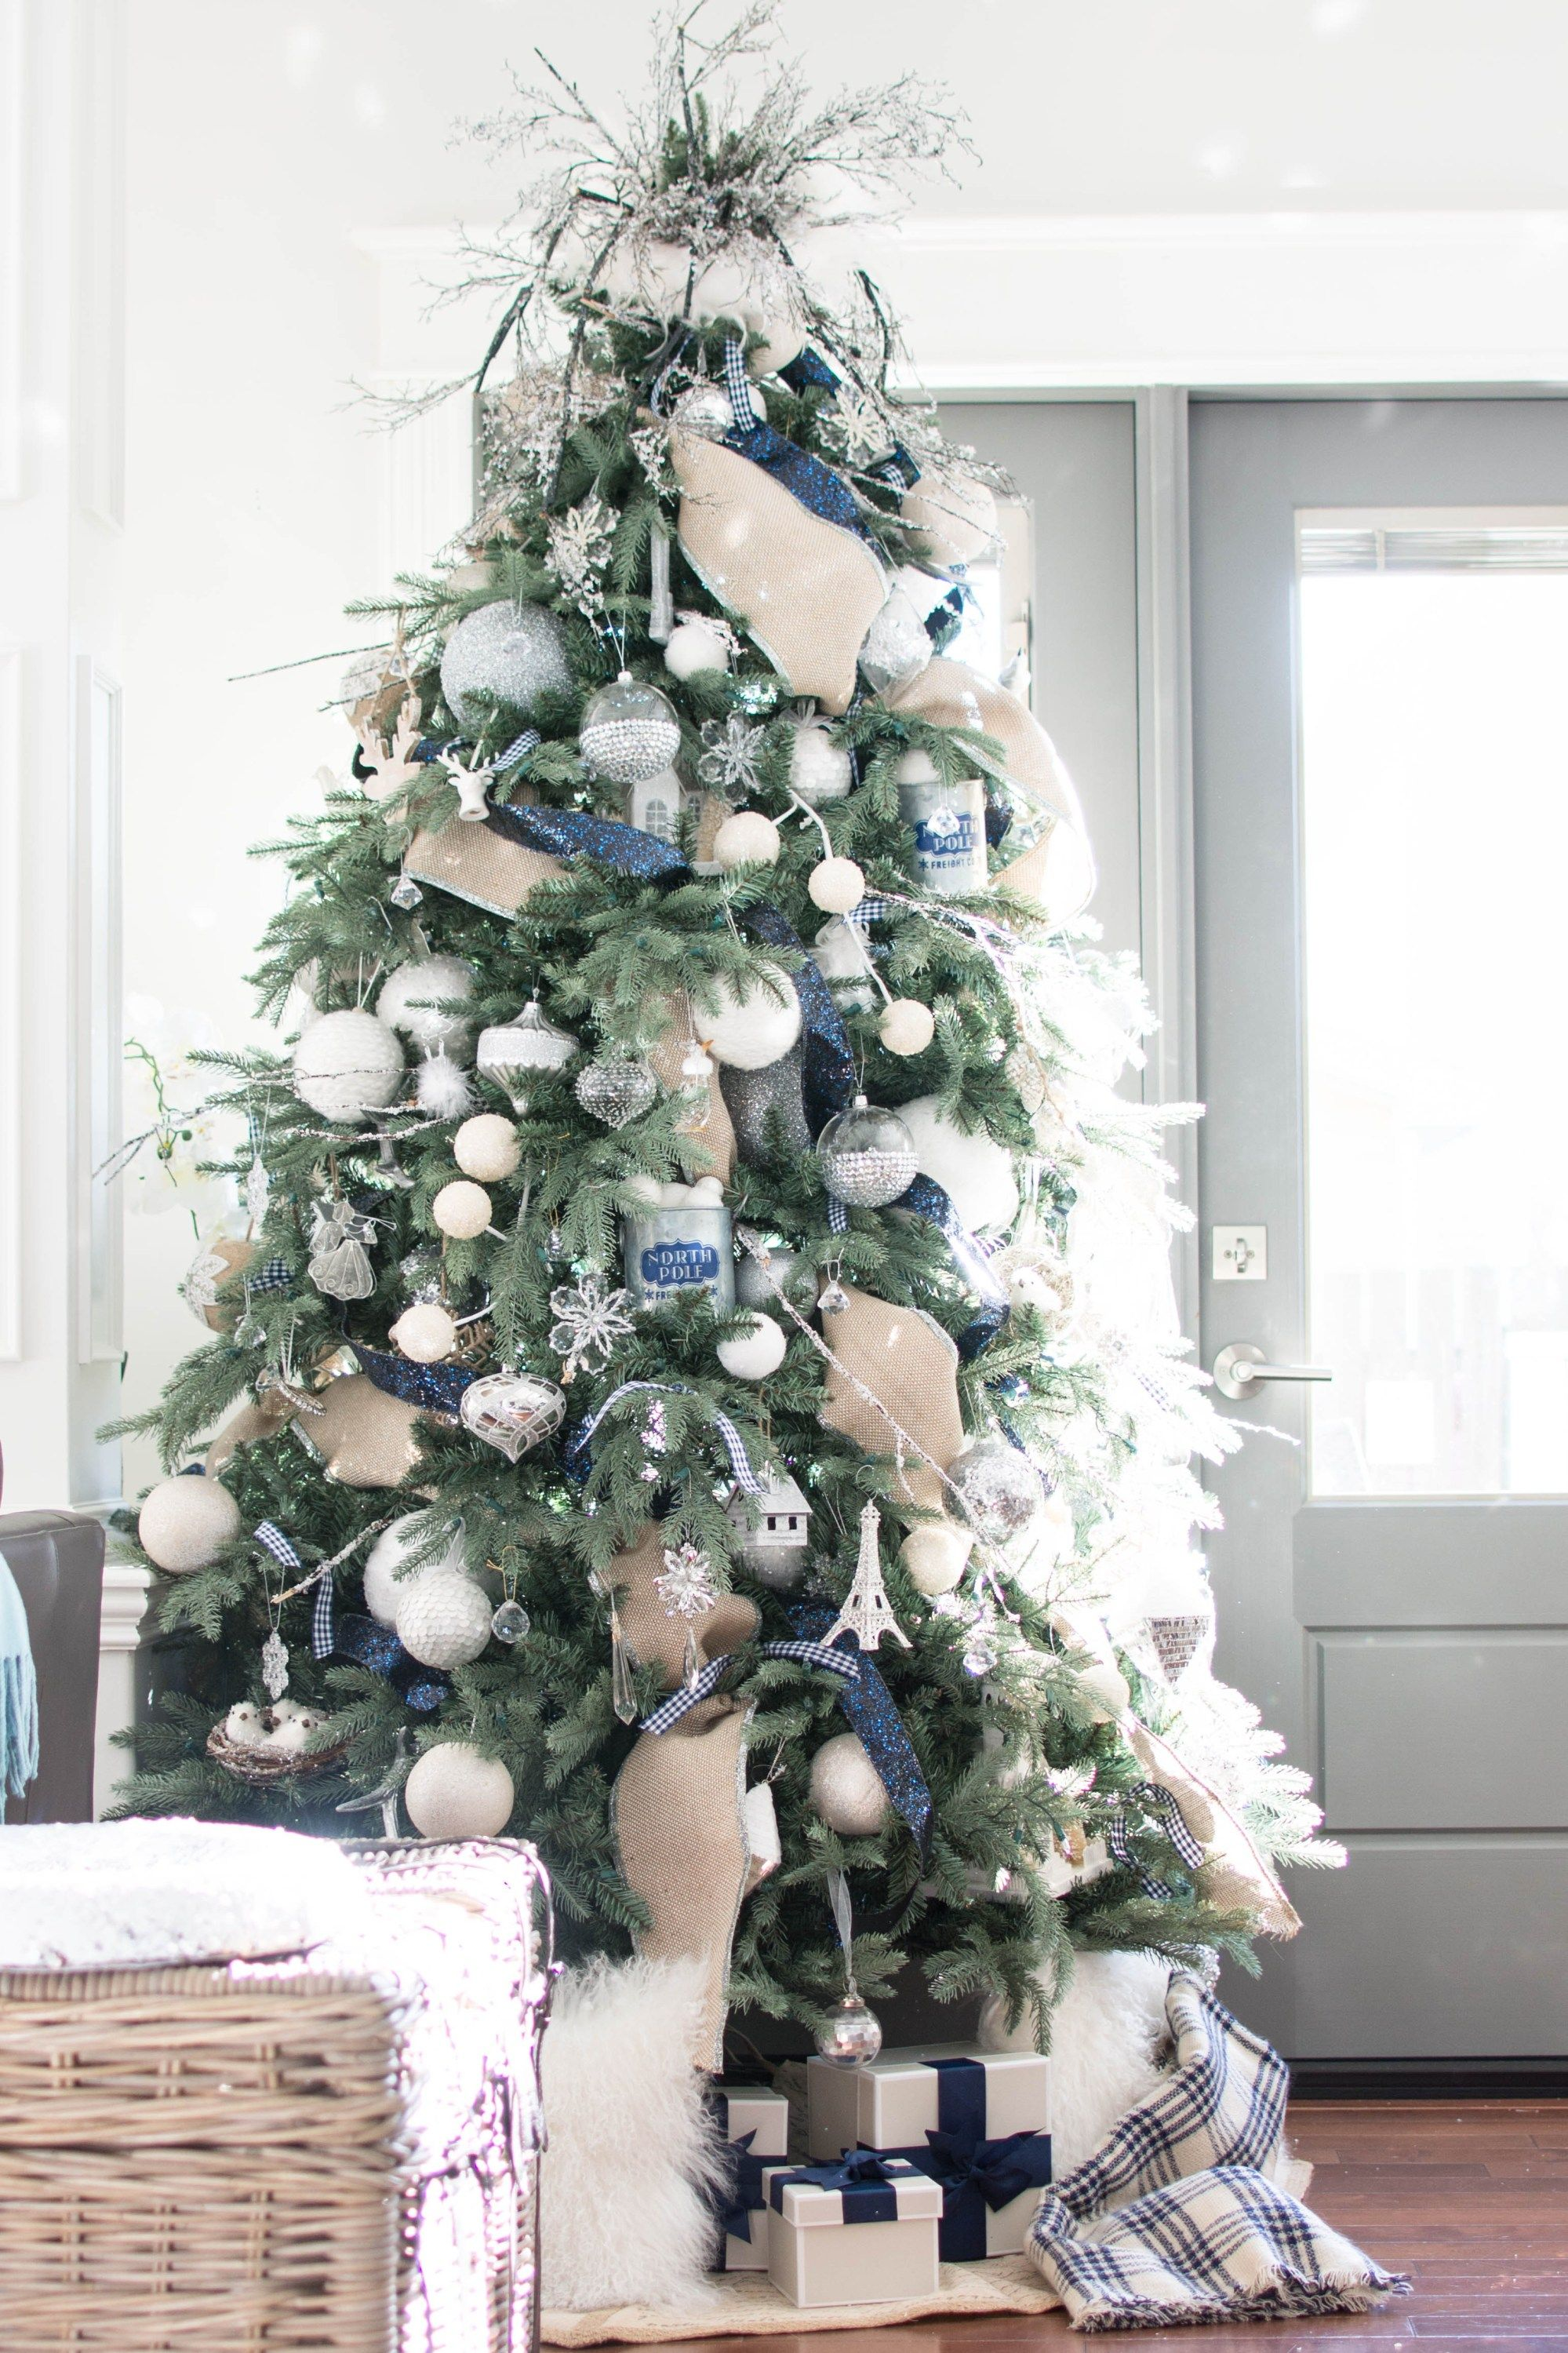 How To Put Ribbon On A Christmas Tree Tutorial A Pop Of Pretty Home Decor Blog Ribbon On Christmas Tree Christmas Tree Garland Glamorous Christmas Tree